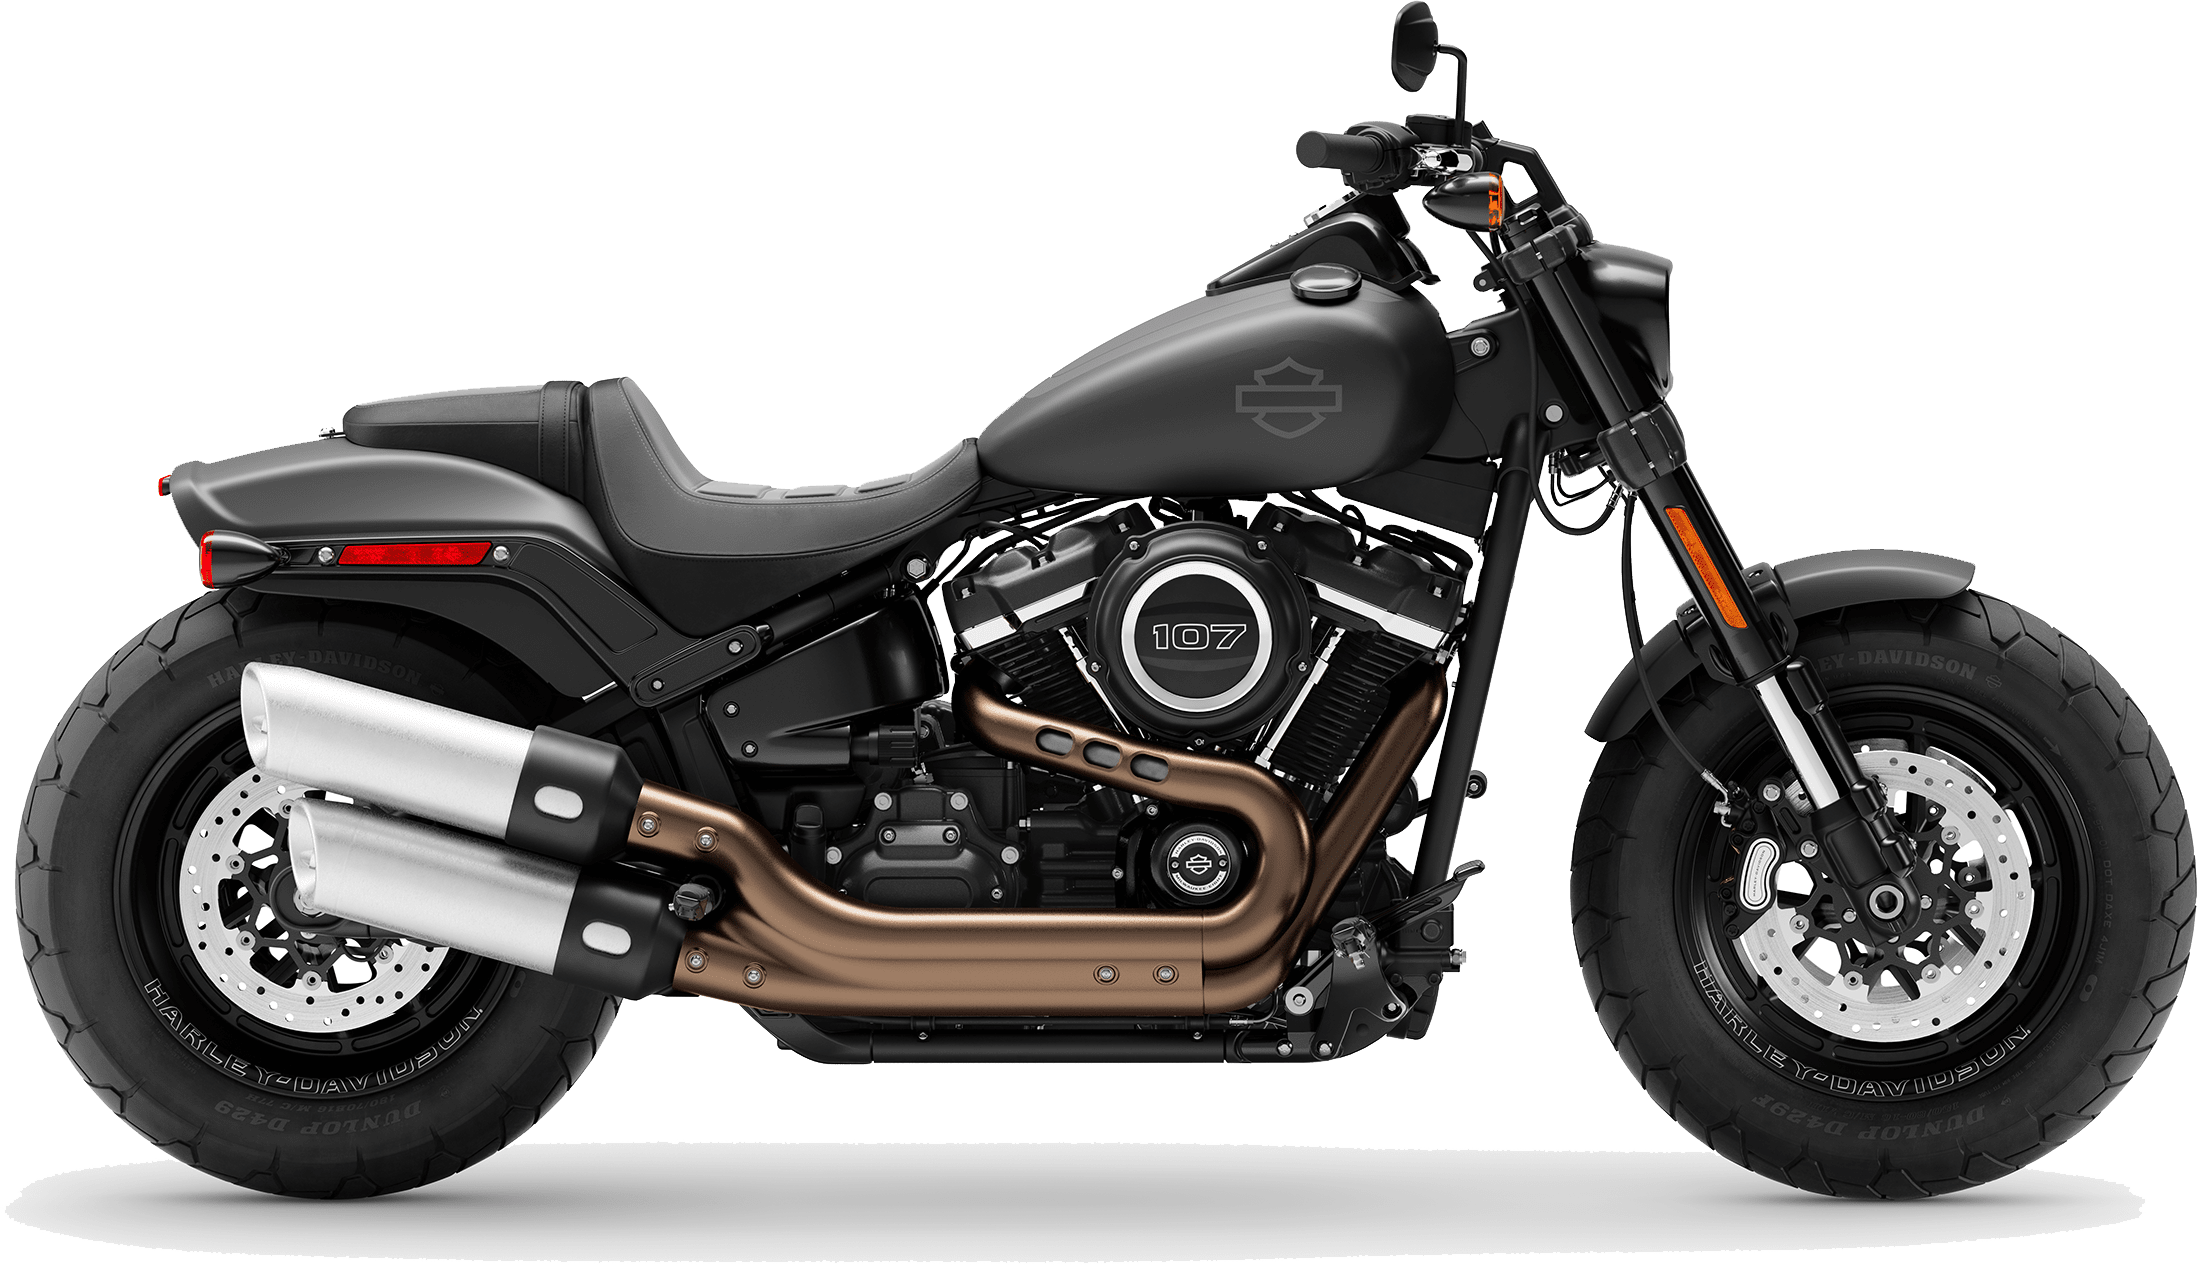 2019 Harley-Davidson Softail Fat Bob Black Denim